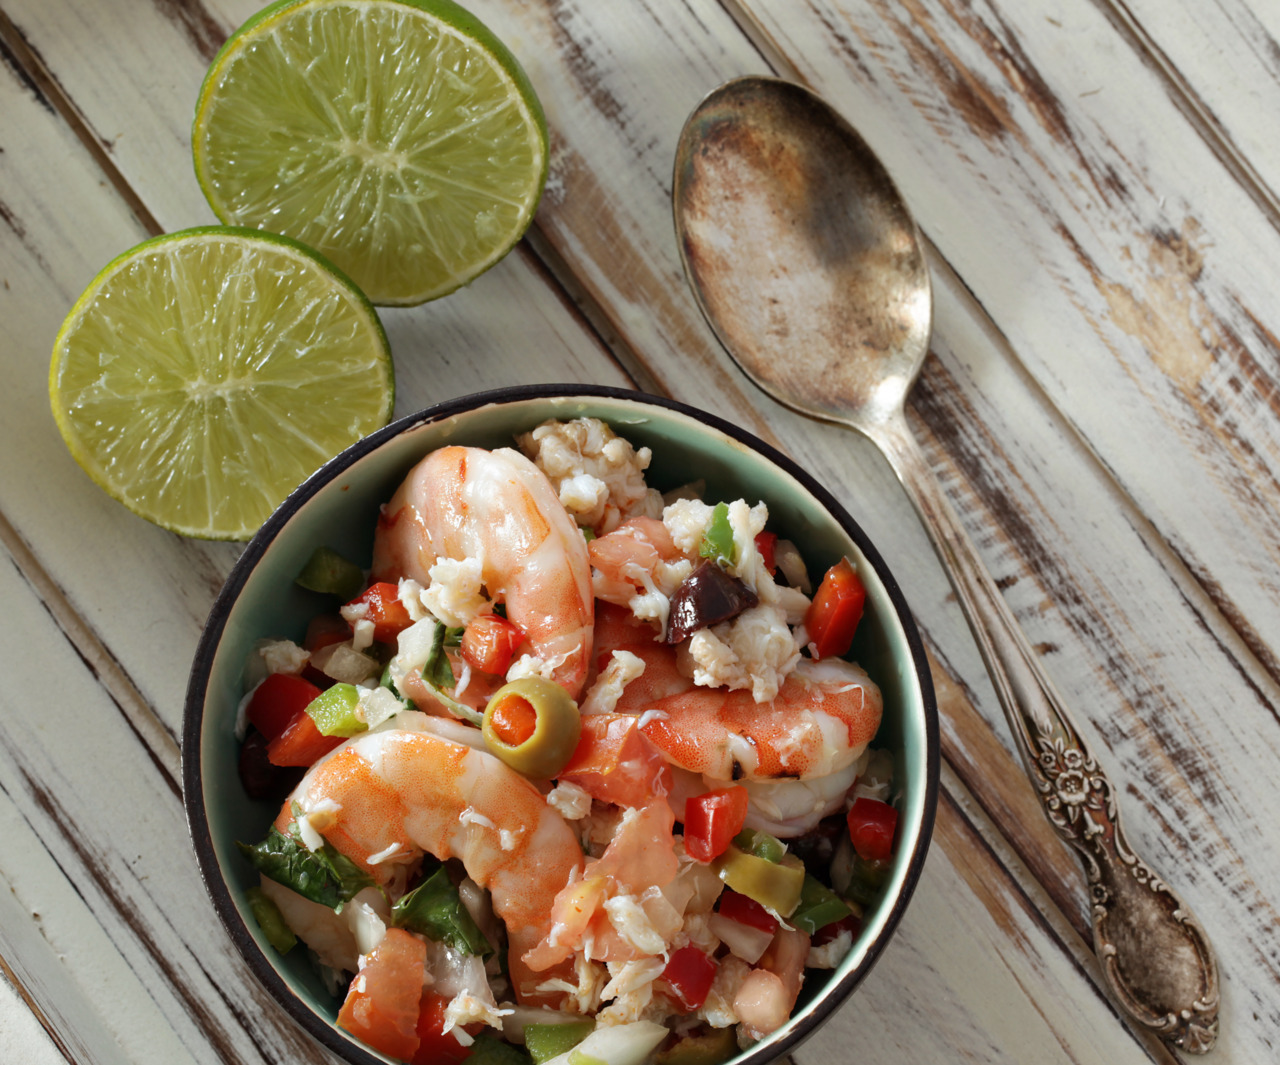 gratitudebliss:  Shrimp & Crab Ceviche Recipe:http://www.food.com/recipe/mexican-ceviche-8899